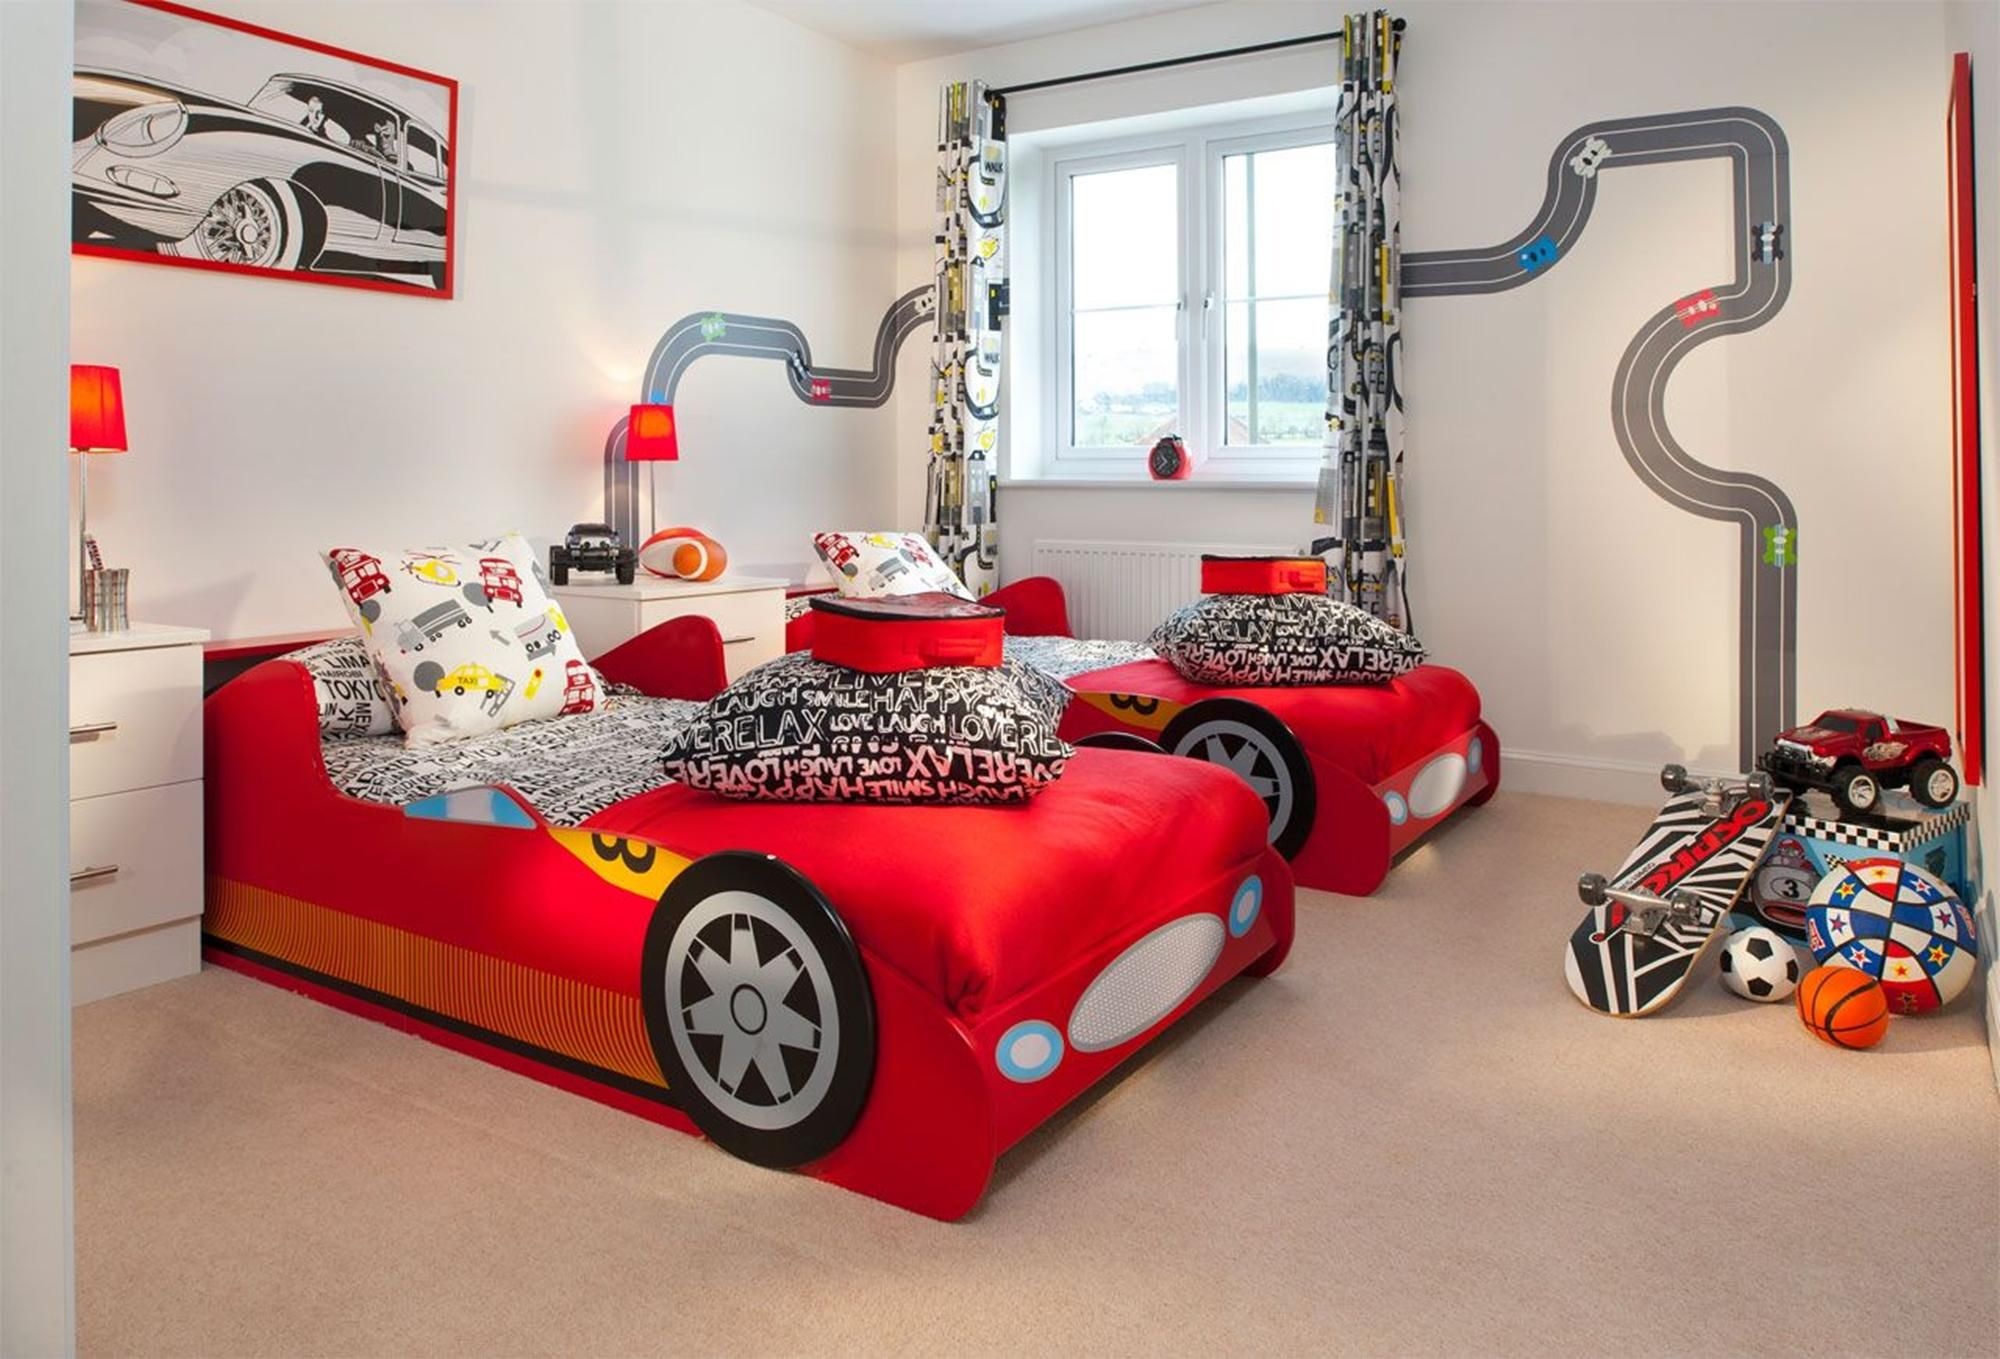 Race Car Room Decor Boys Car Bedroom Babys Rooms Pinterest Boys Car Bedroom Car